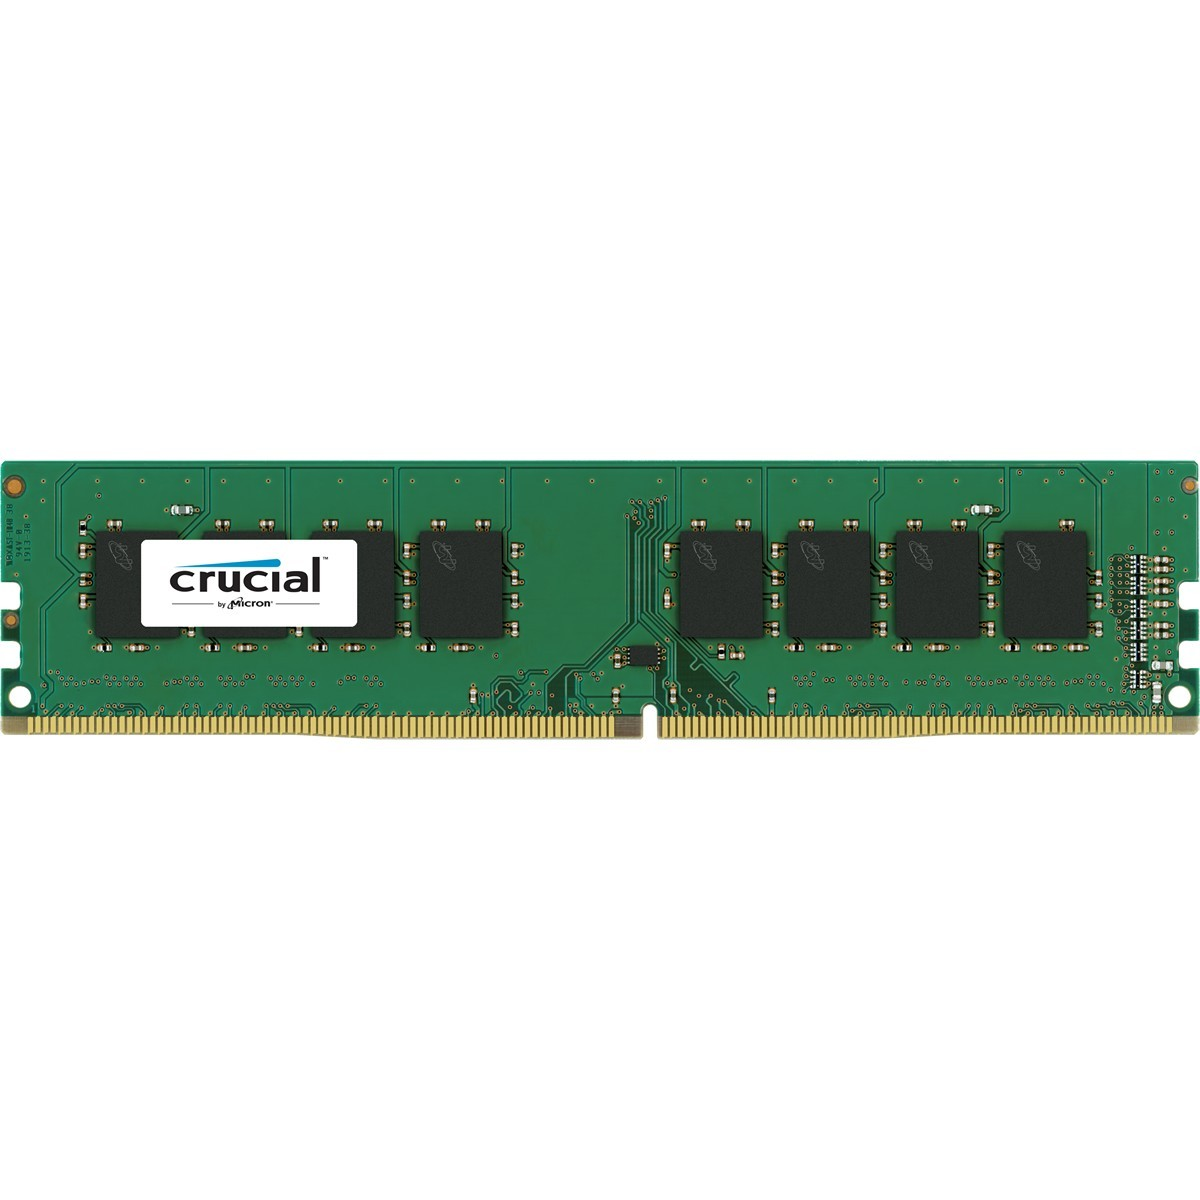 CRUCIAL 8GB 2400MHz DDR4 PC RAM CL17 1.2V CT8G4DFS824A